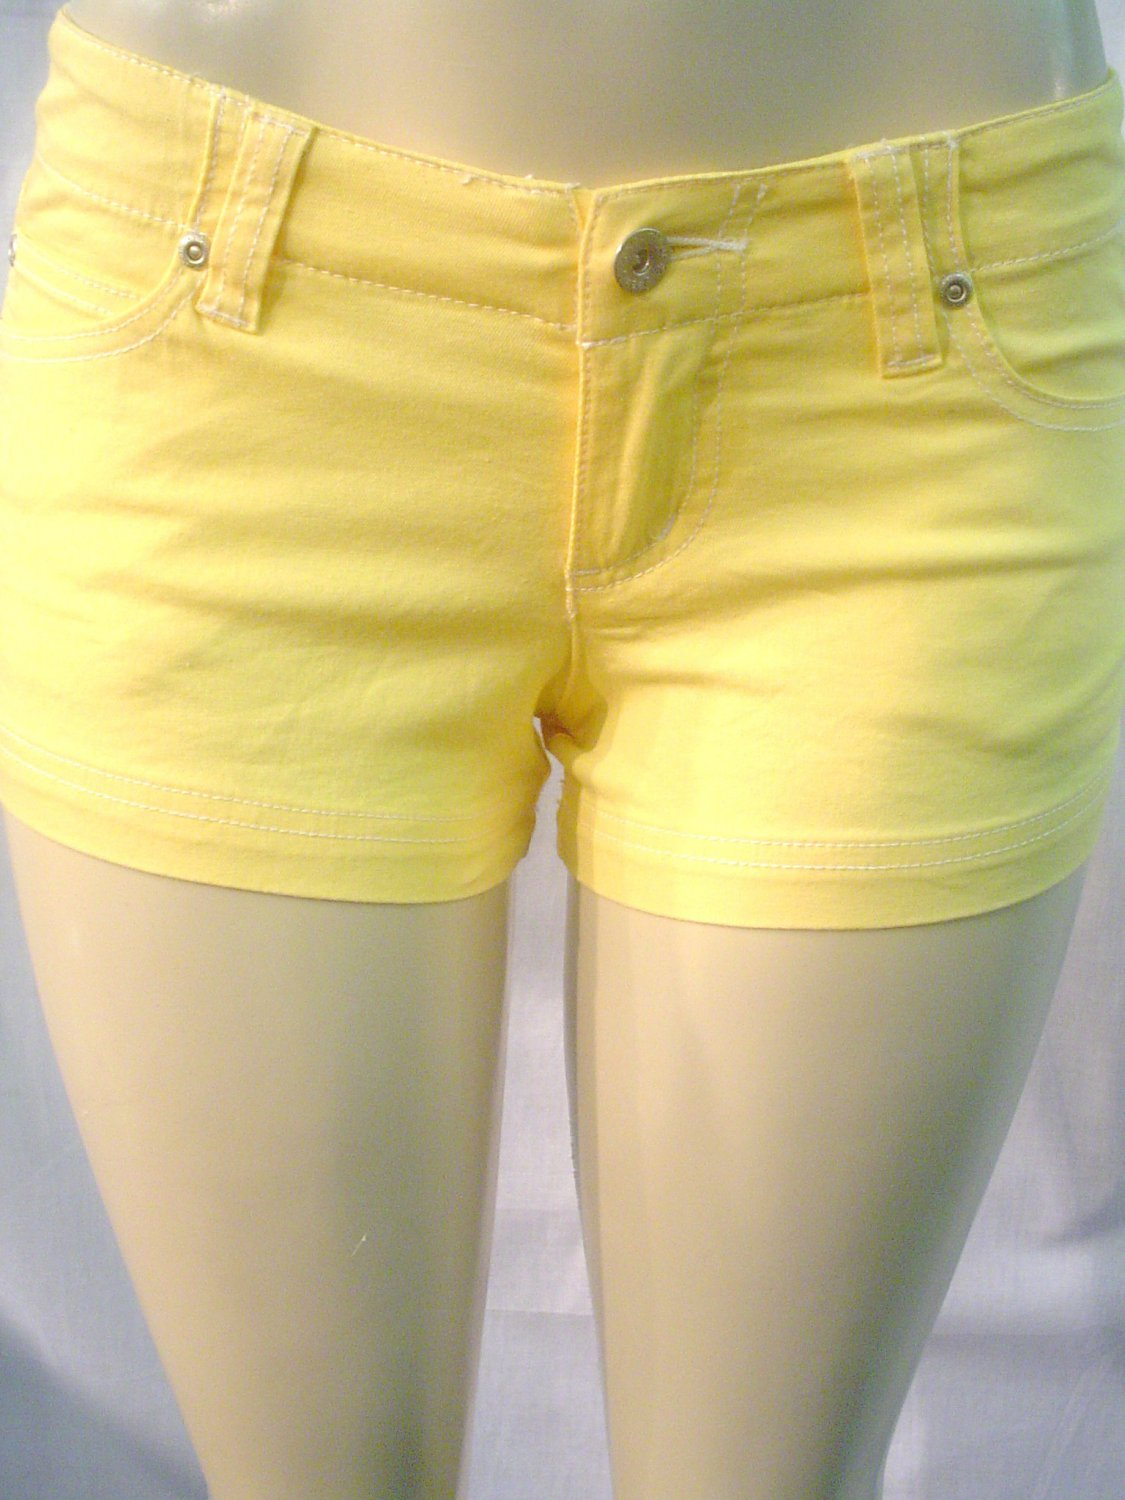 NEW ultra stretchy soft colored denim knit shorts, yelow  sz 5